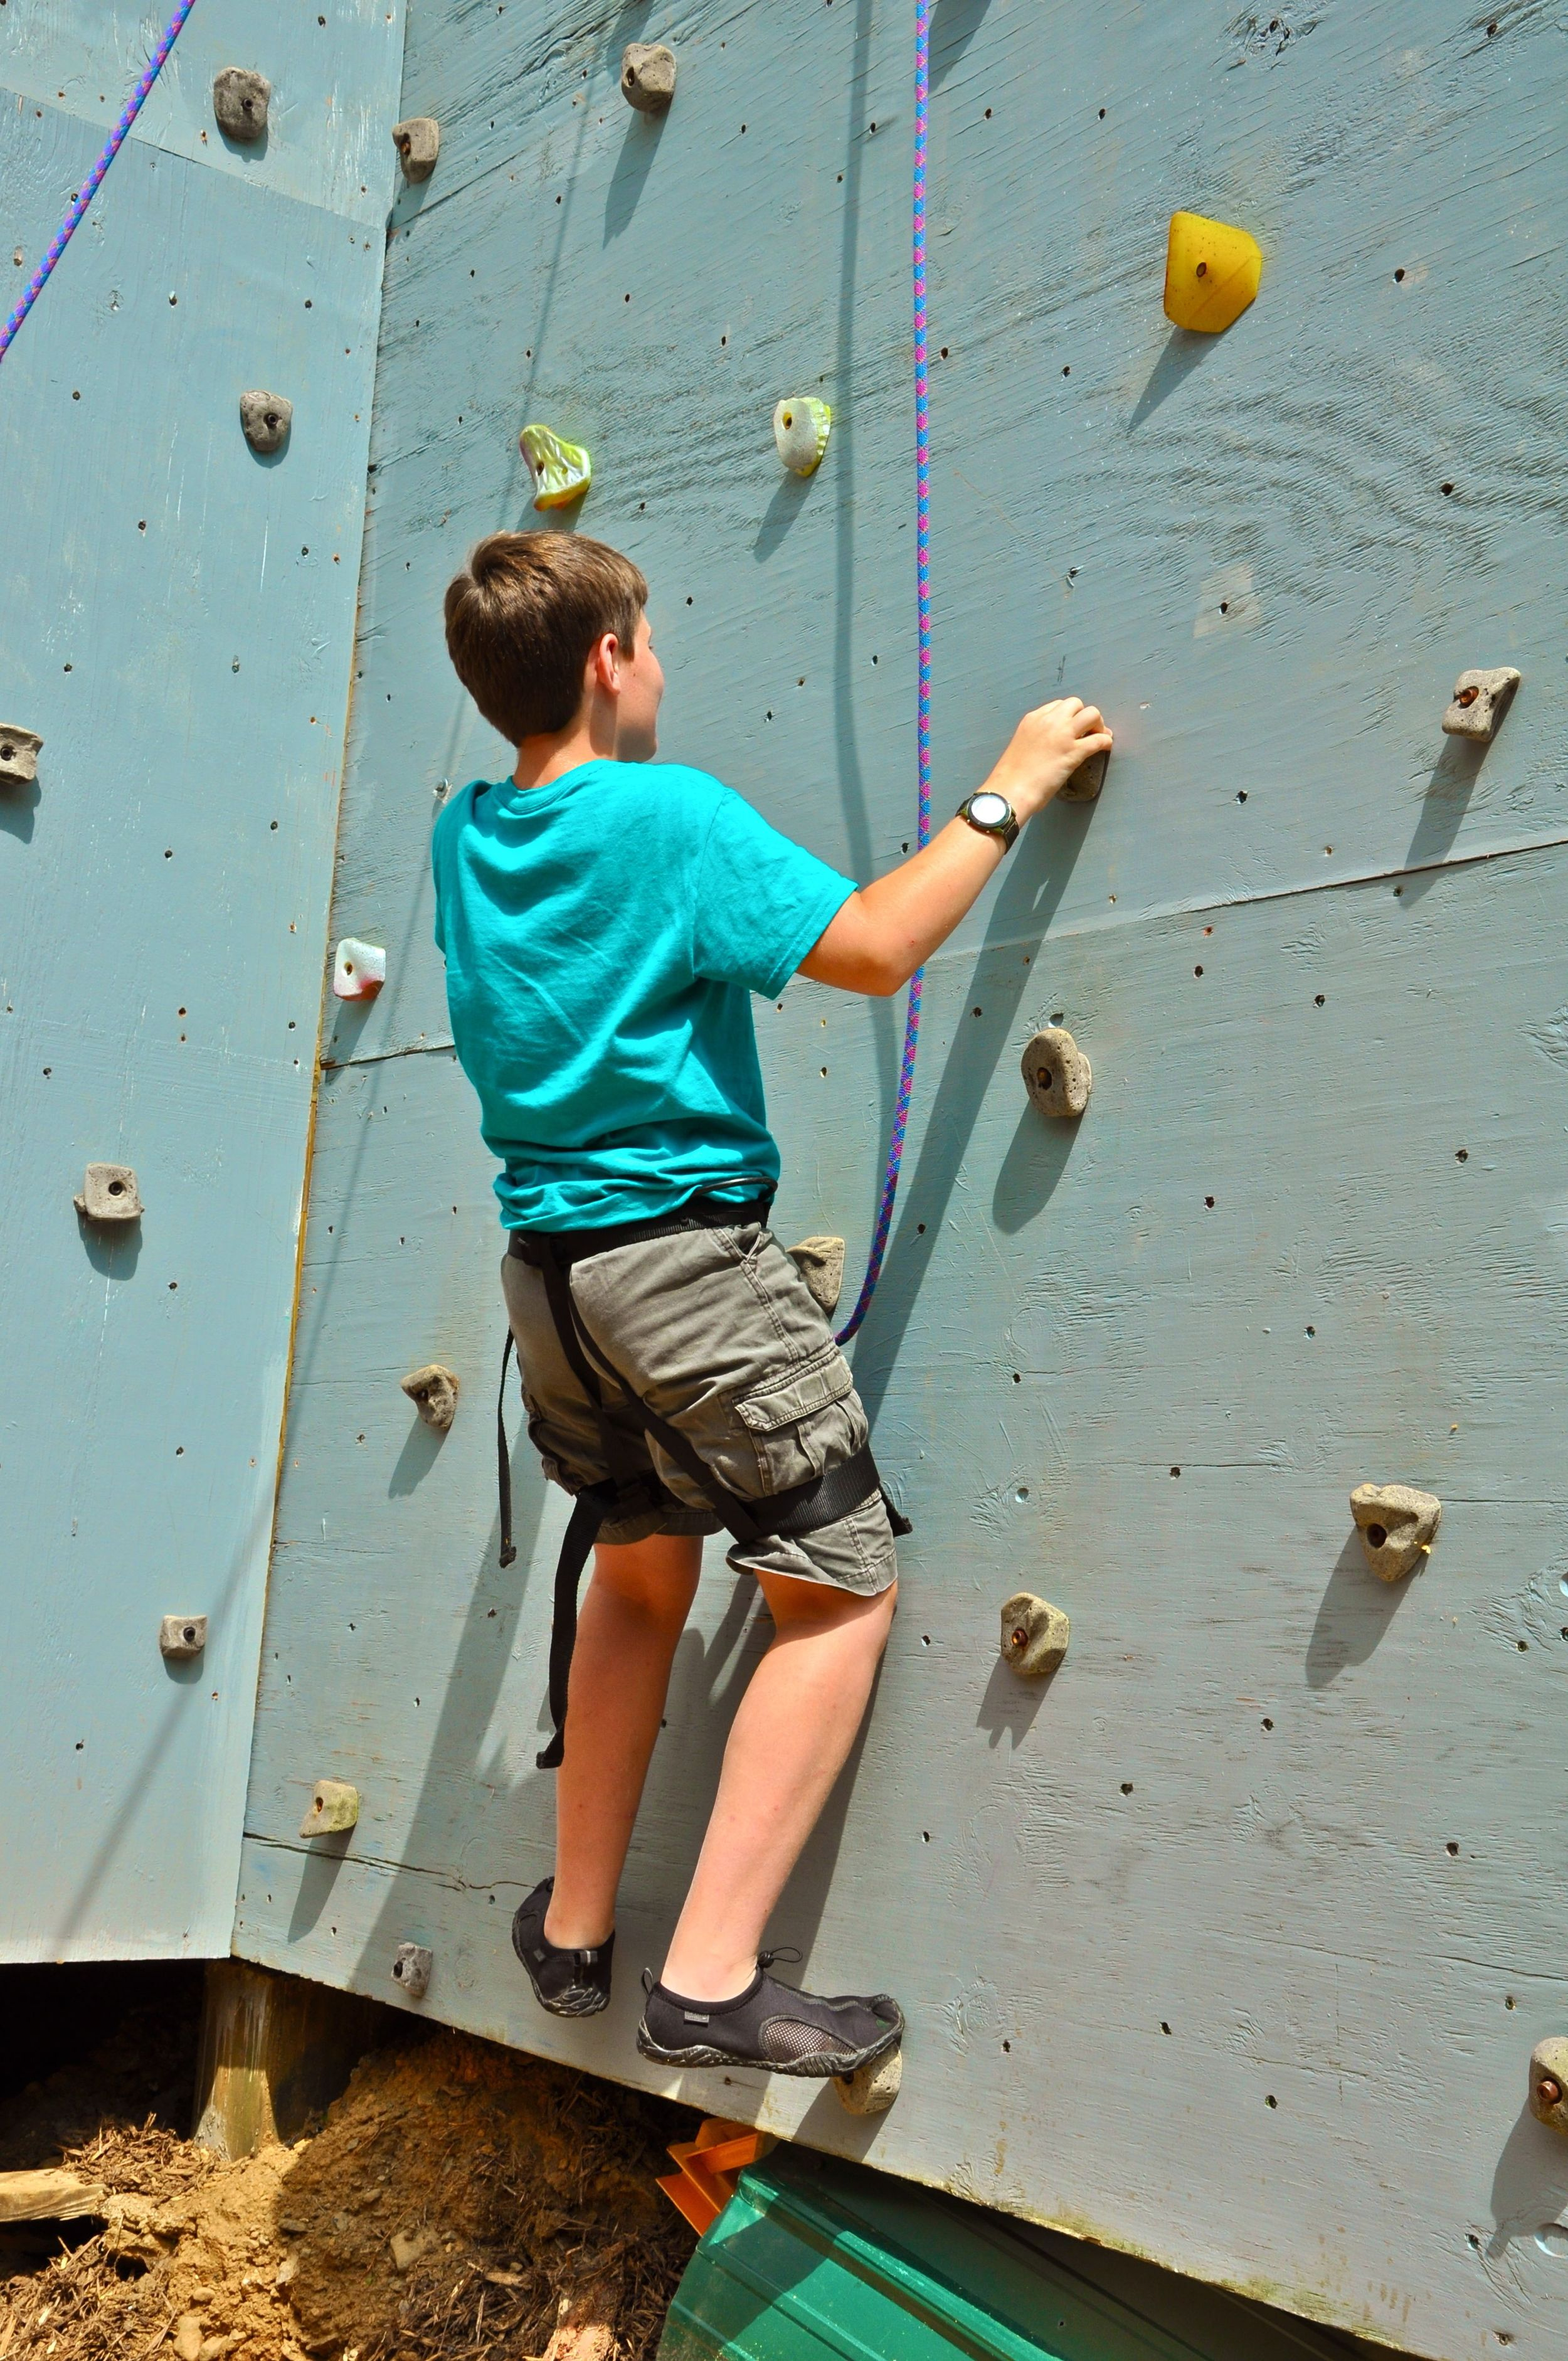 jackson-starts-his-second-climb-up-the-climbing-wall-and-makes-it-all-the-way-to-the-top-in-47-seconds.jpg